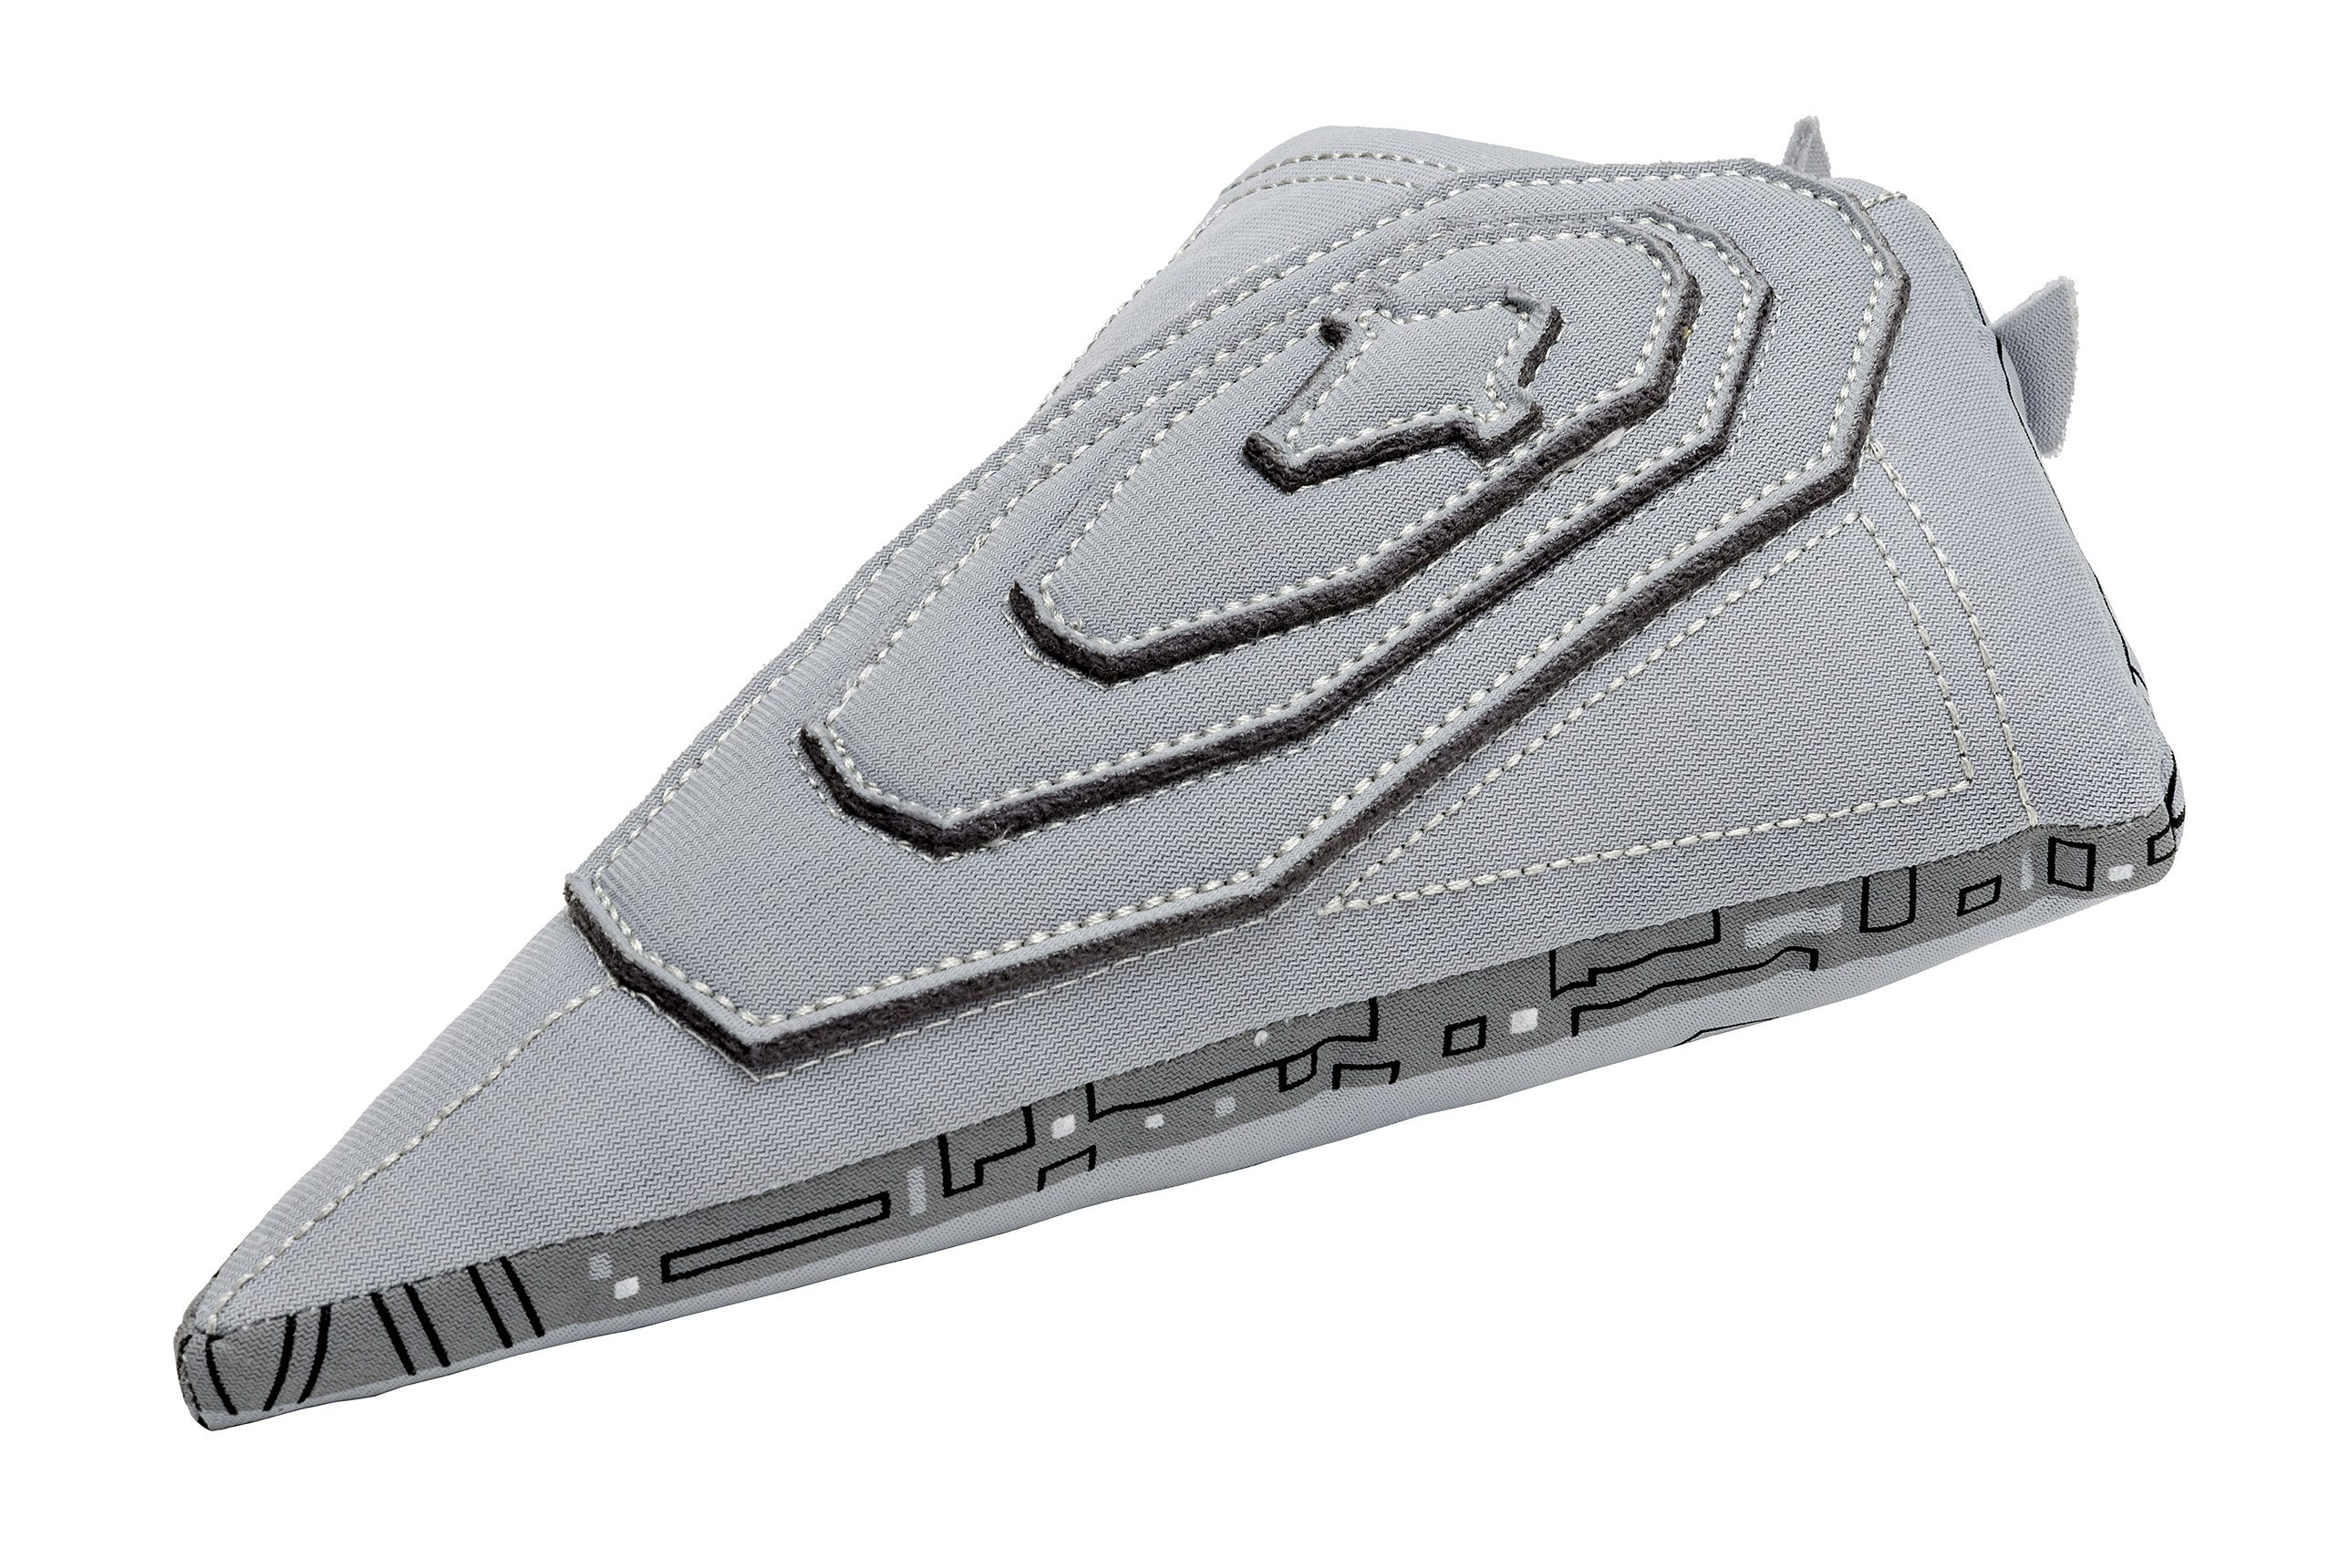 JOY TOY Plüschfigur, »Disney Star Wars Star Destroyer Finalizer Plüsch«